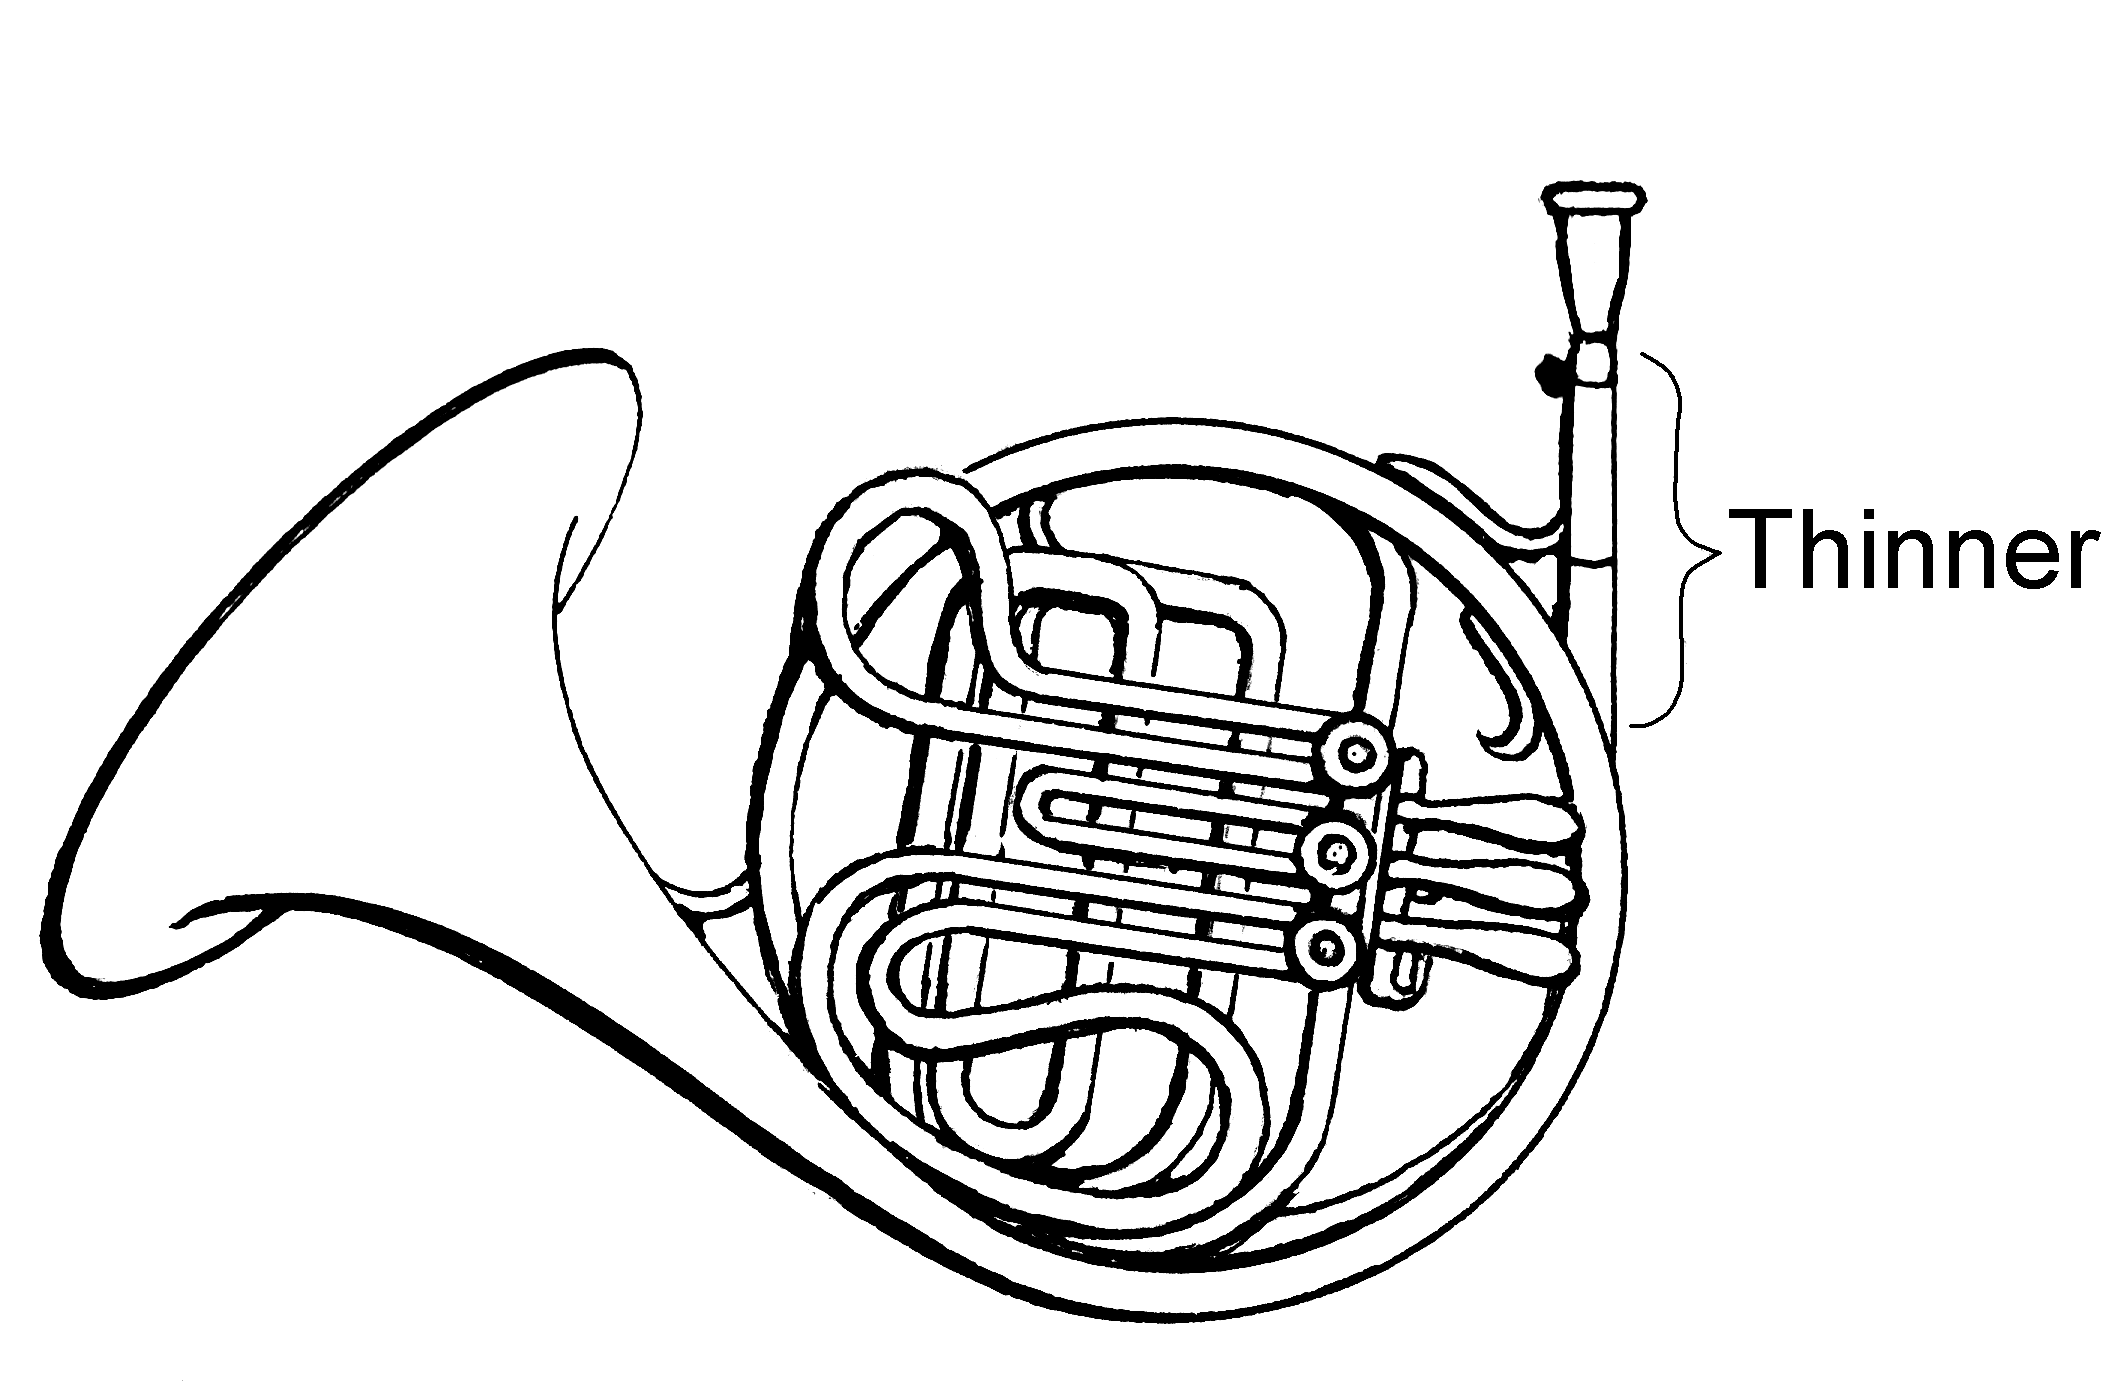 2120x1390 Filefrench Horn 2 (Psf).png